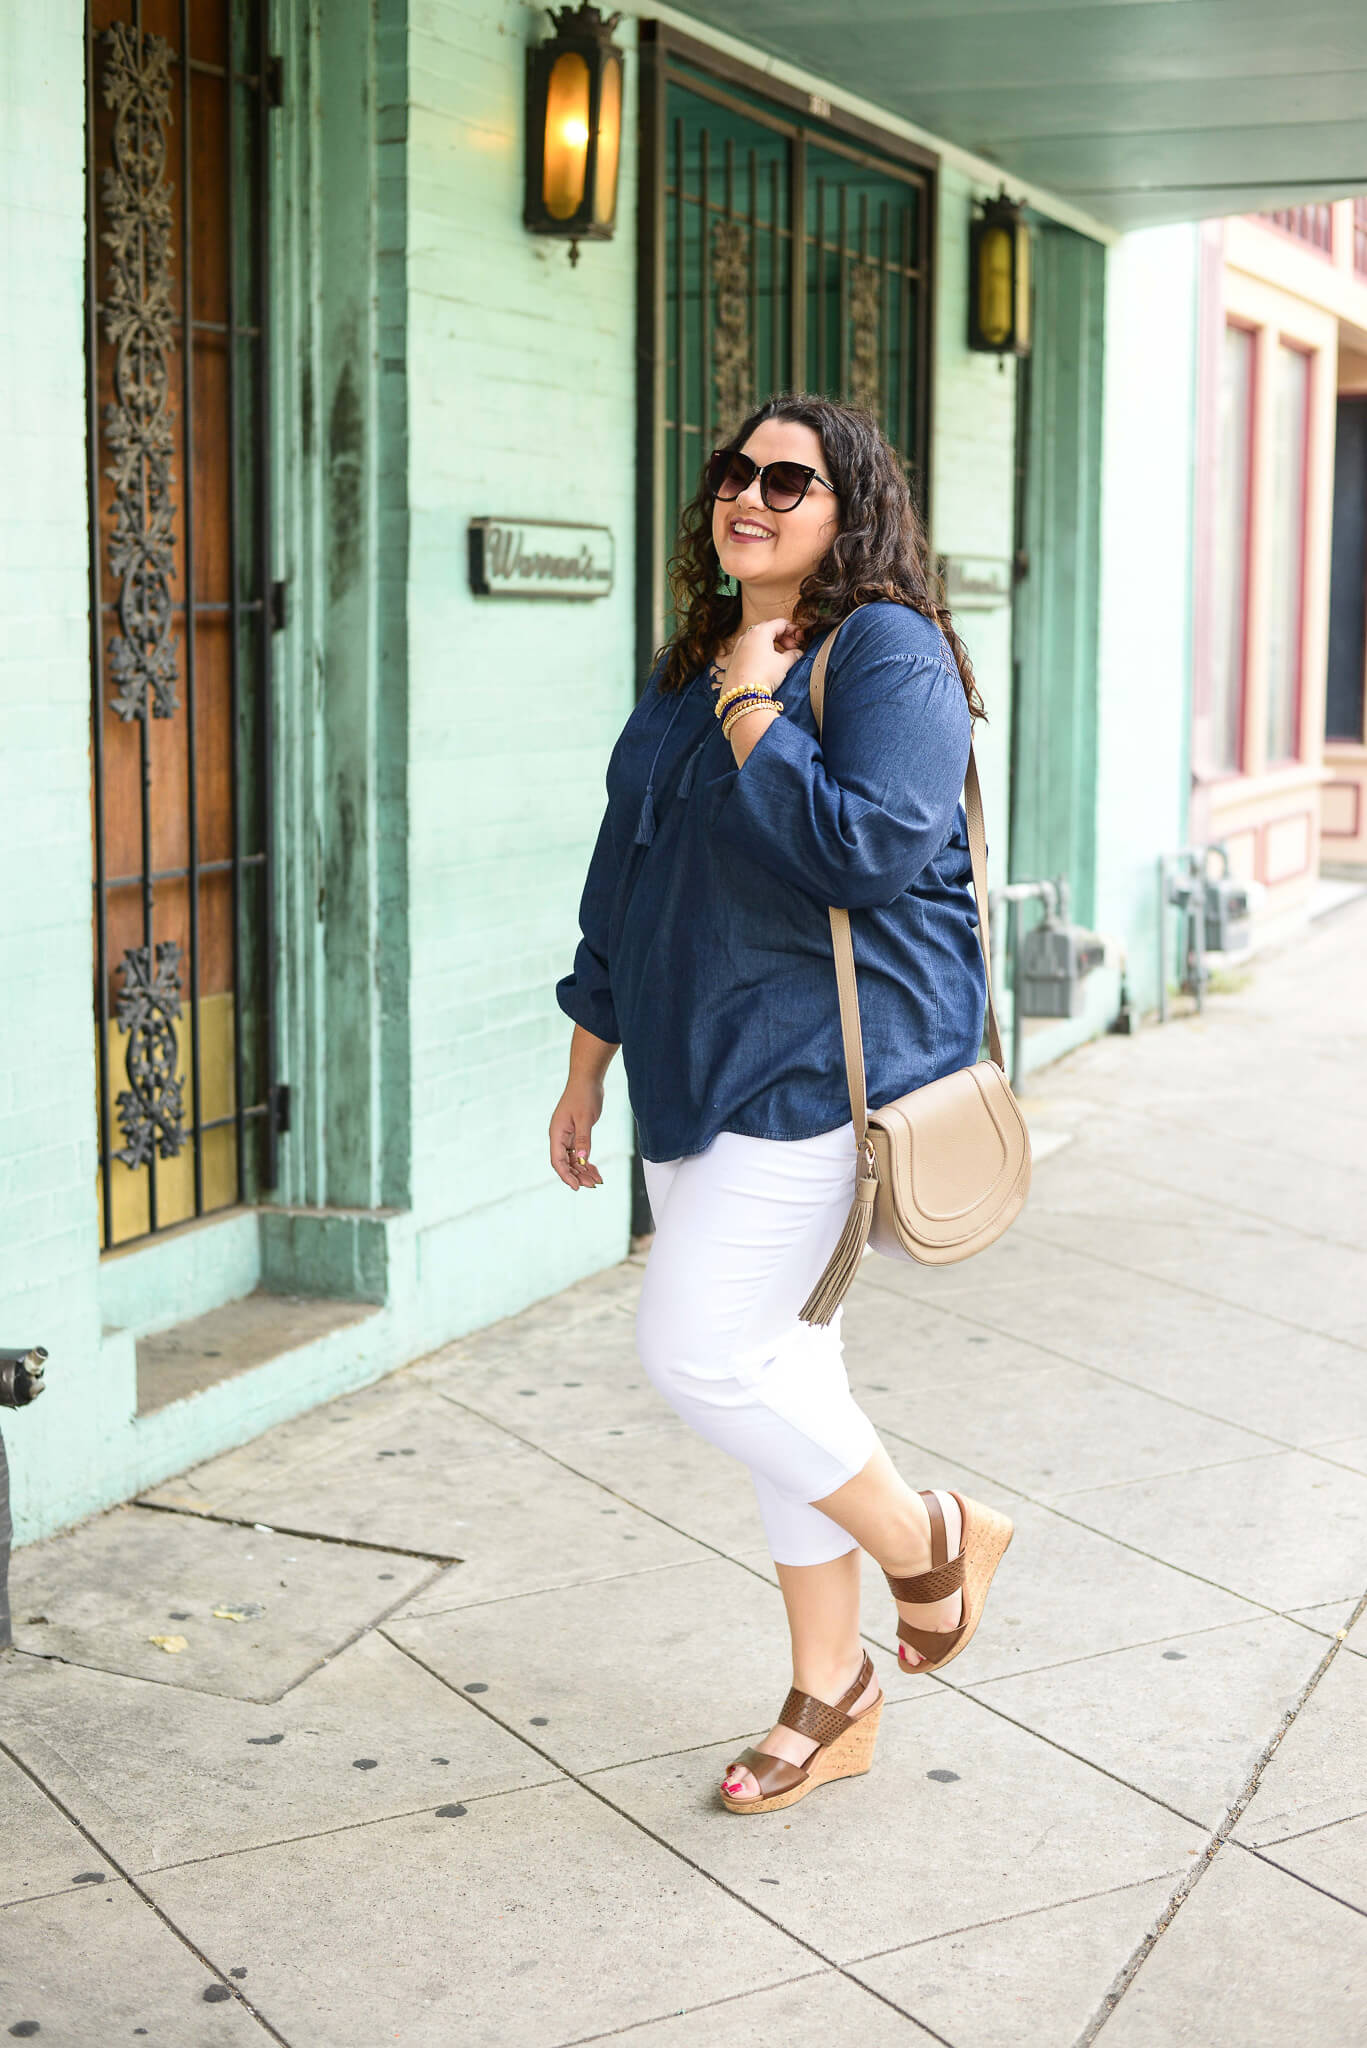 Staying stylish and comfortable in the summer with Just My Size plus size clothing